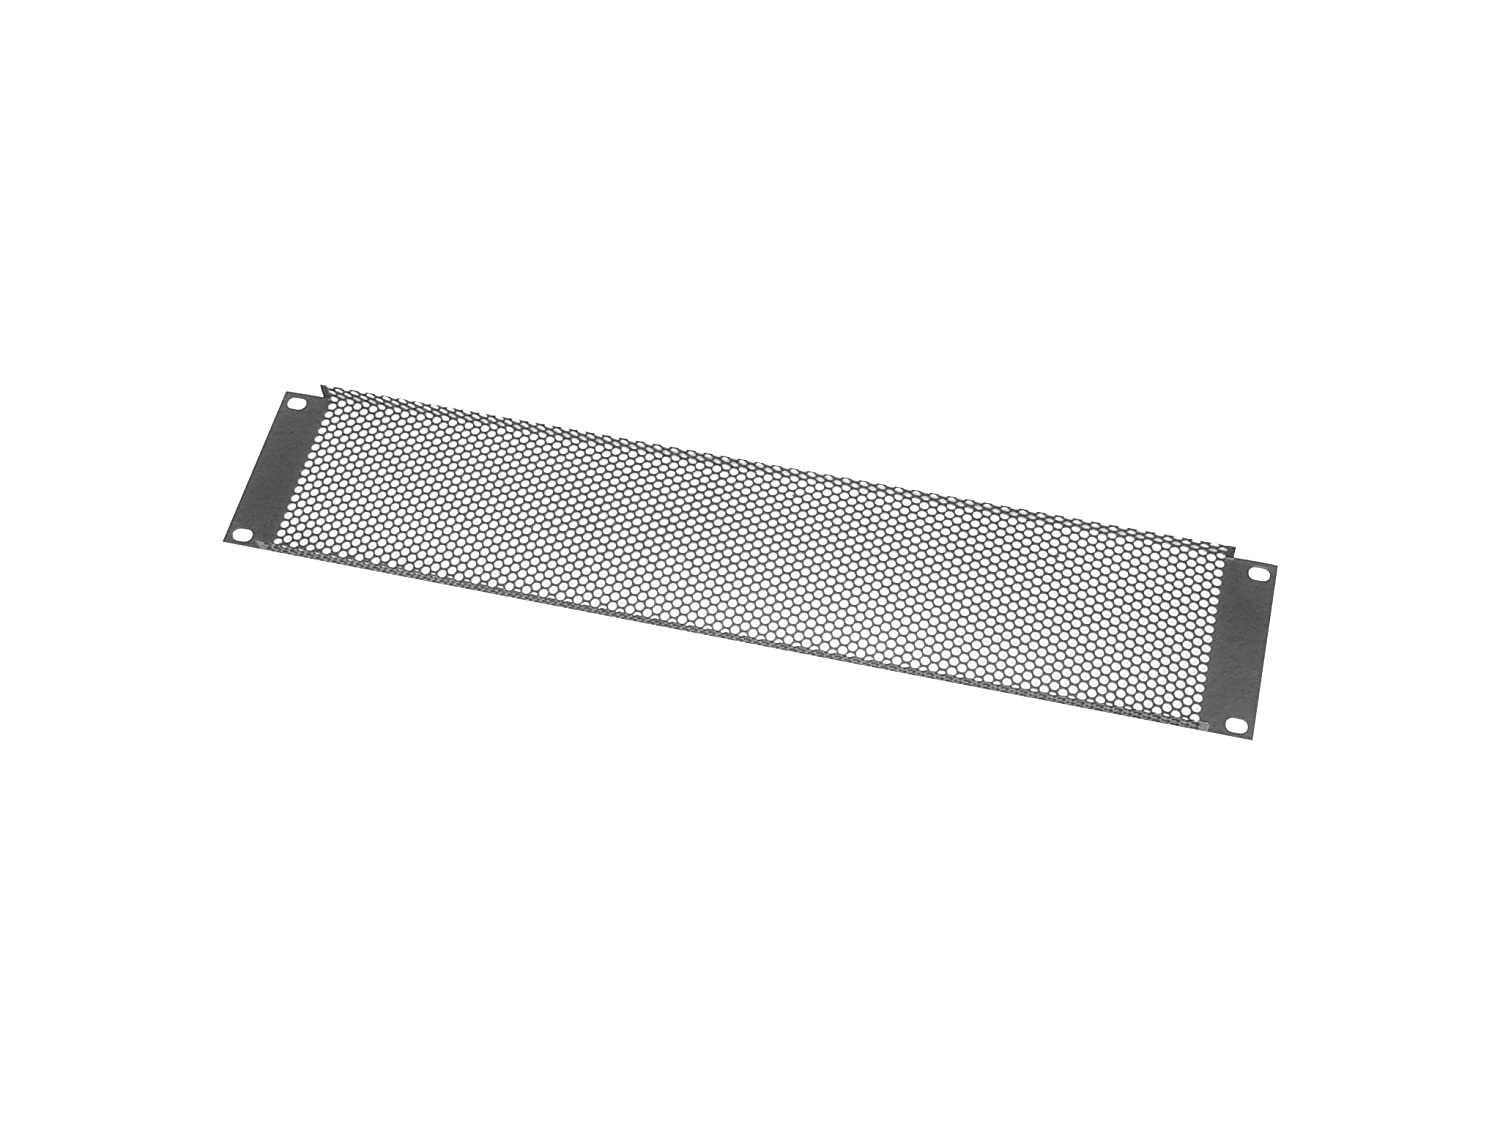 Odyssey ARPVLP2 2 Space Fine Perforated Panel Rack Accessory Odyssey Innovative Designs